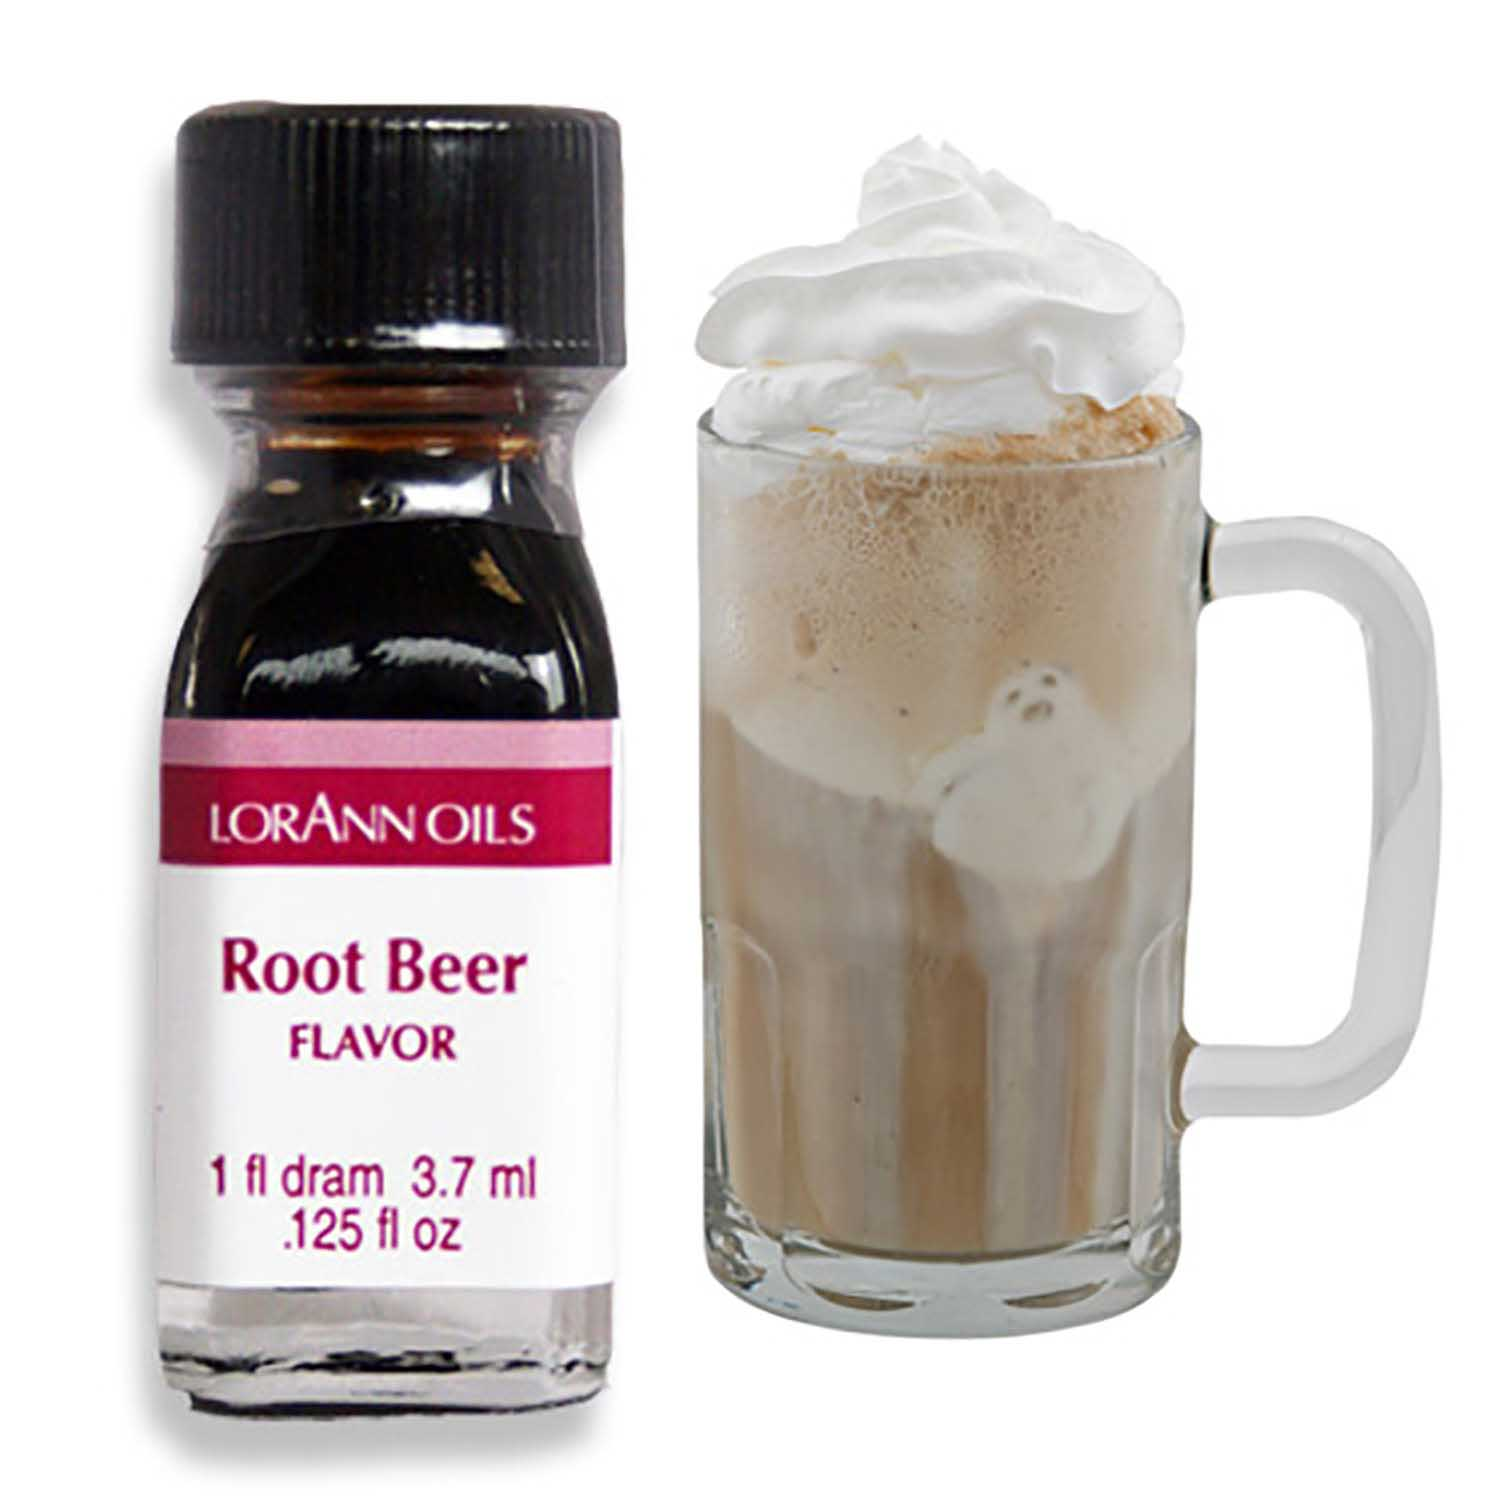 Root Beer LorAnn Super-Strength Flavor